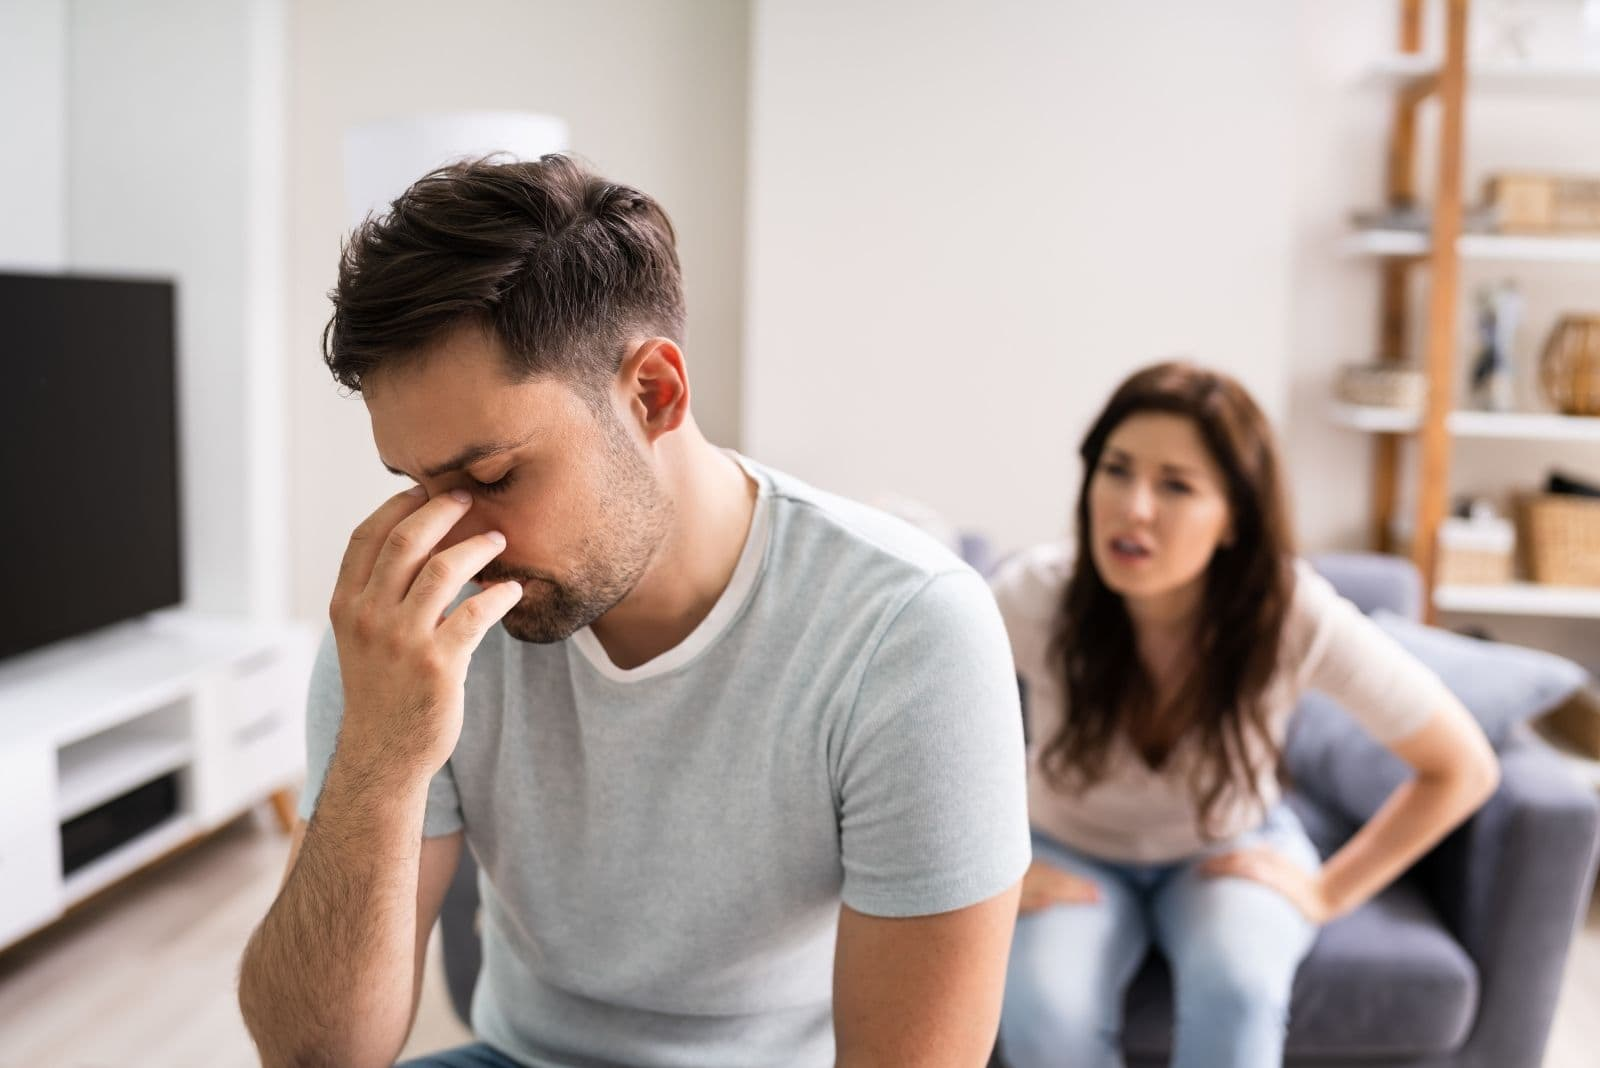 sad man having headache while wife nags him inside living room